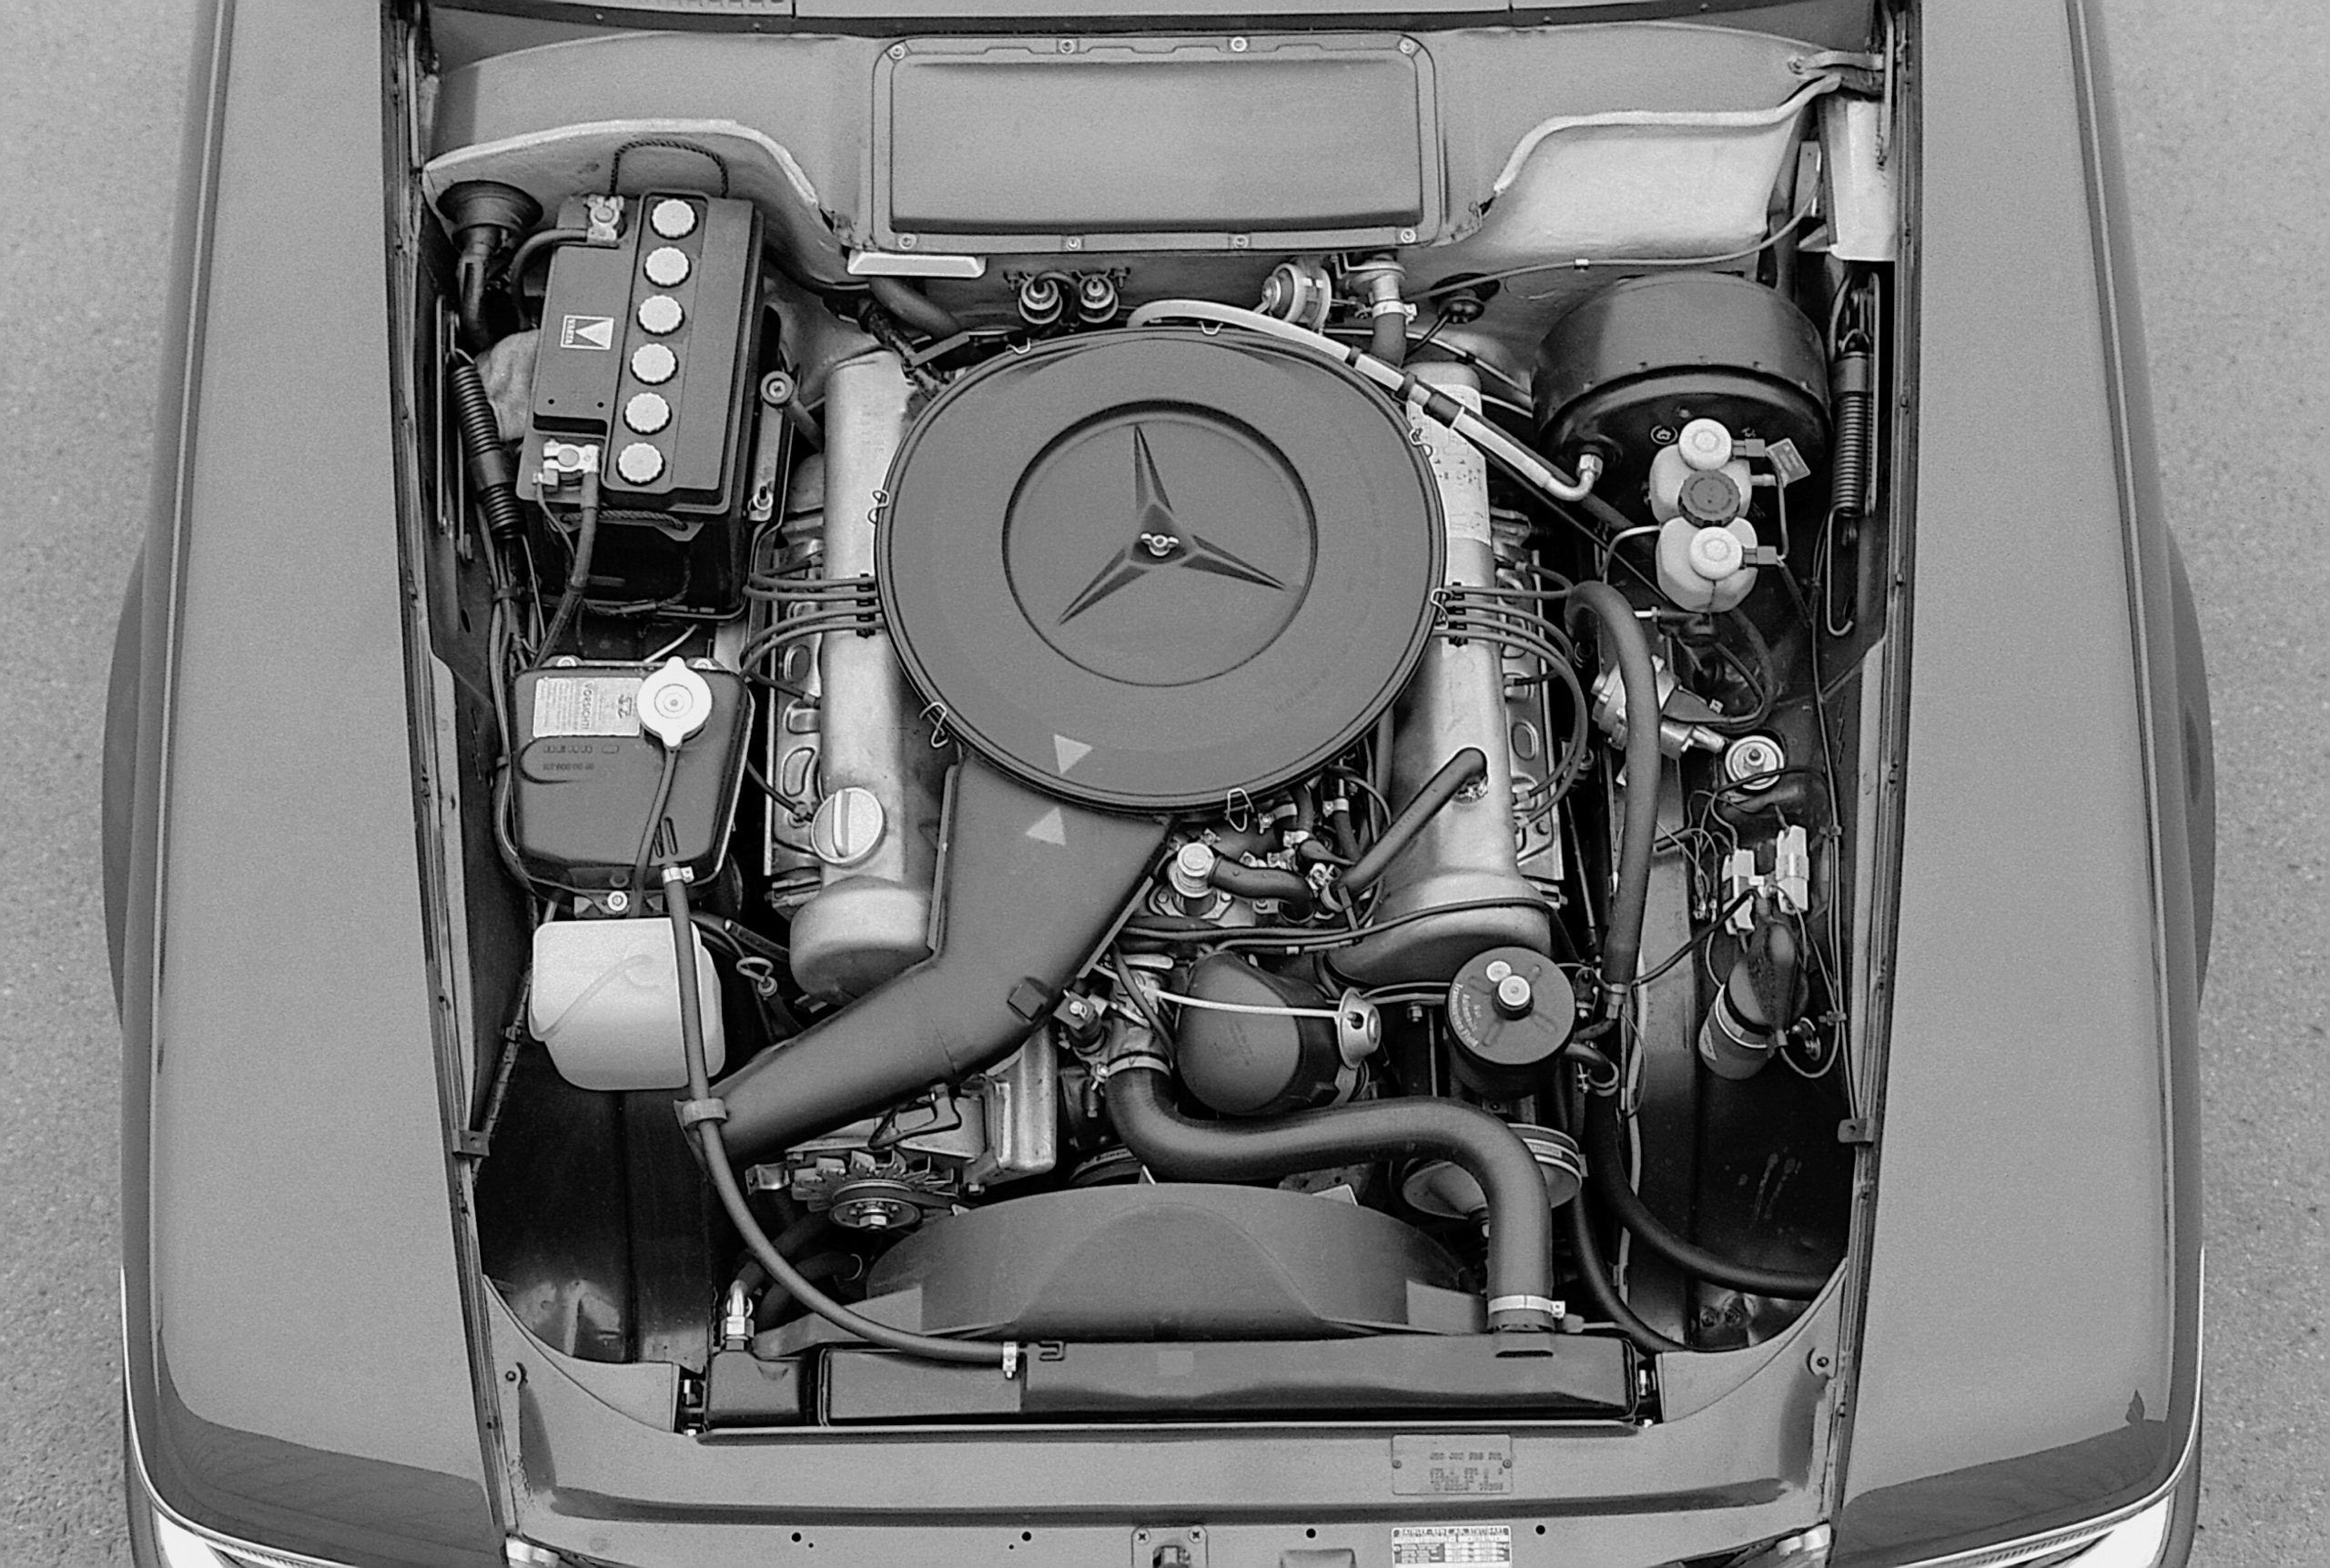 The signature V8 shown here in an early Mercedes R107 350 SL